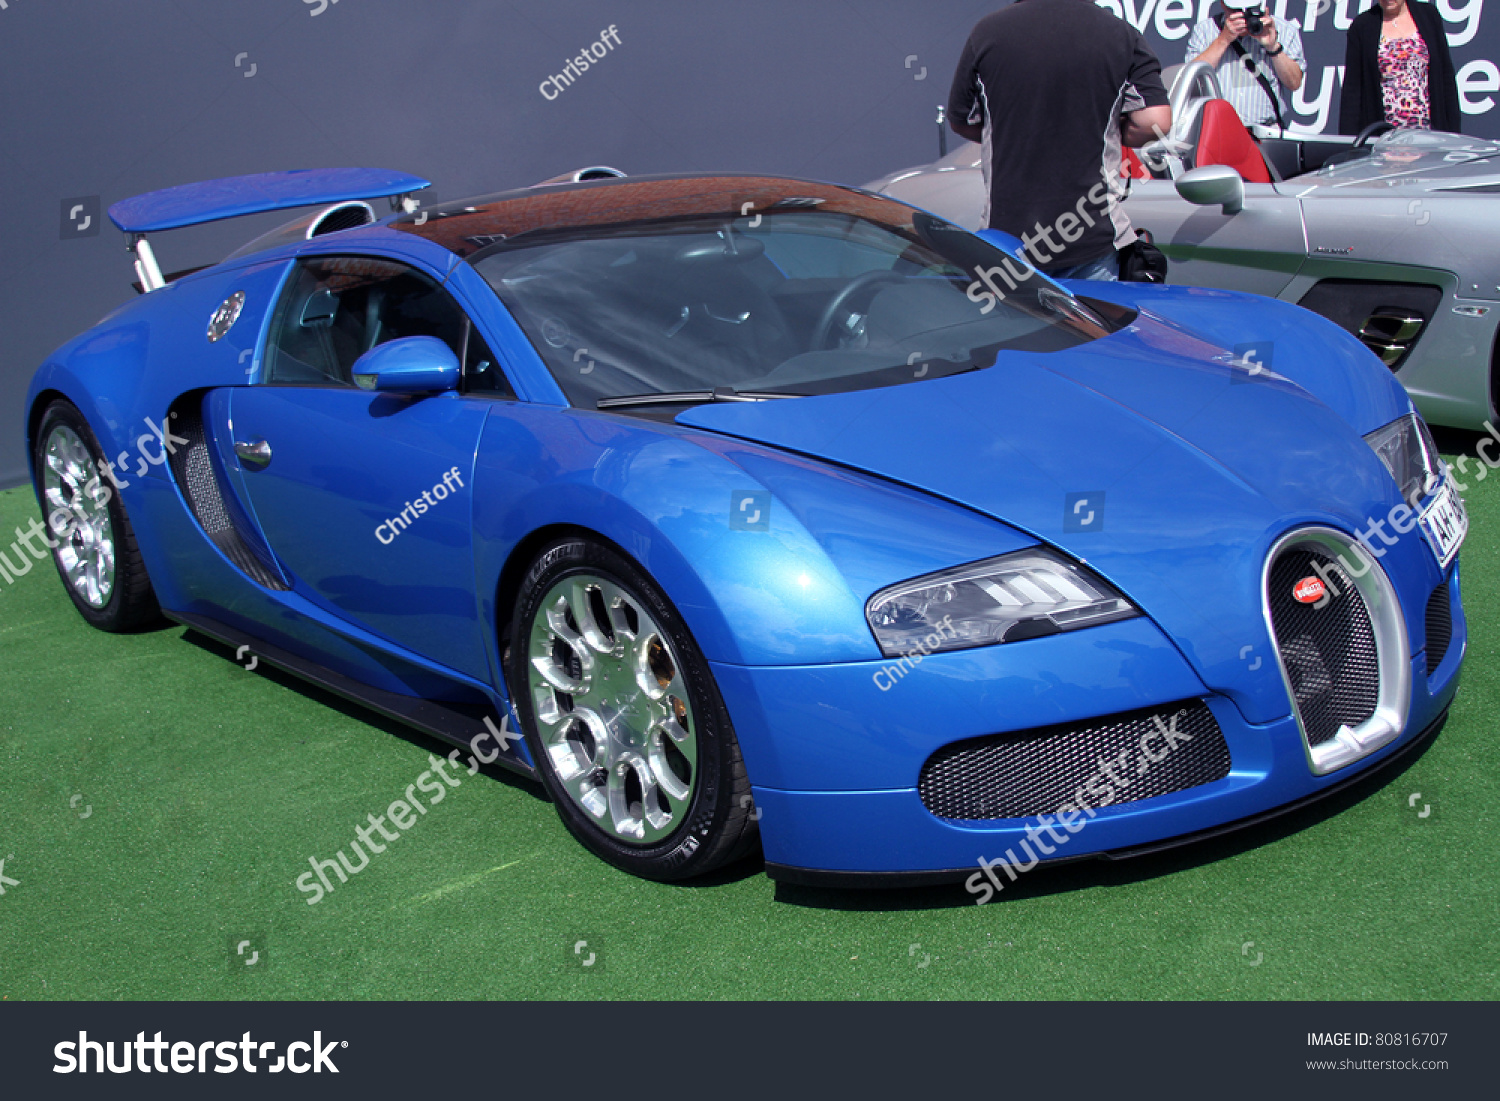 goodwood uk june 30 blue bugatti veyron on display at the annual goodwood festival of speed. Black Bedroom Furniture Sets. Home Design Ideas